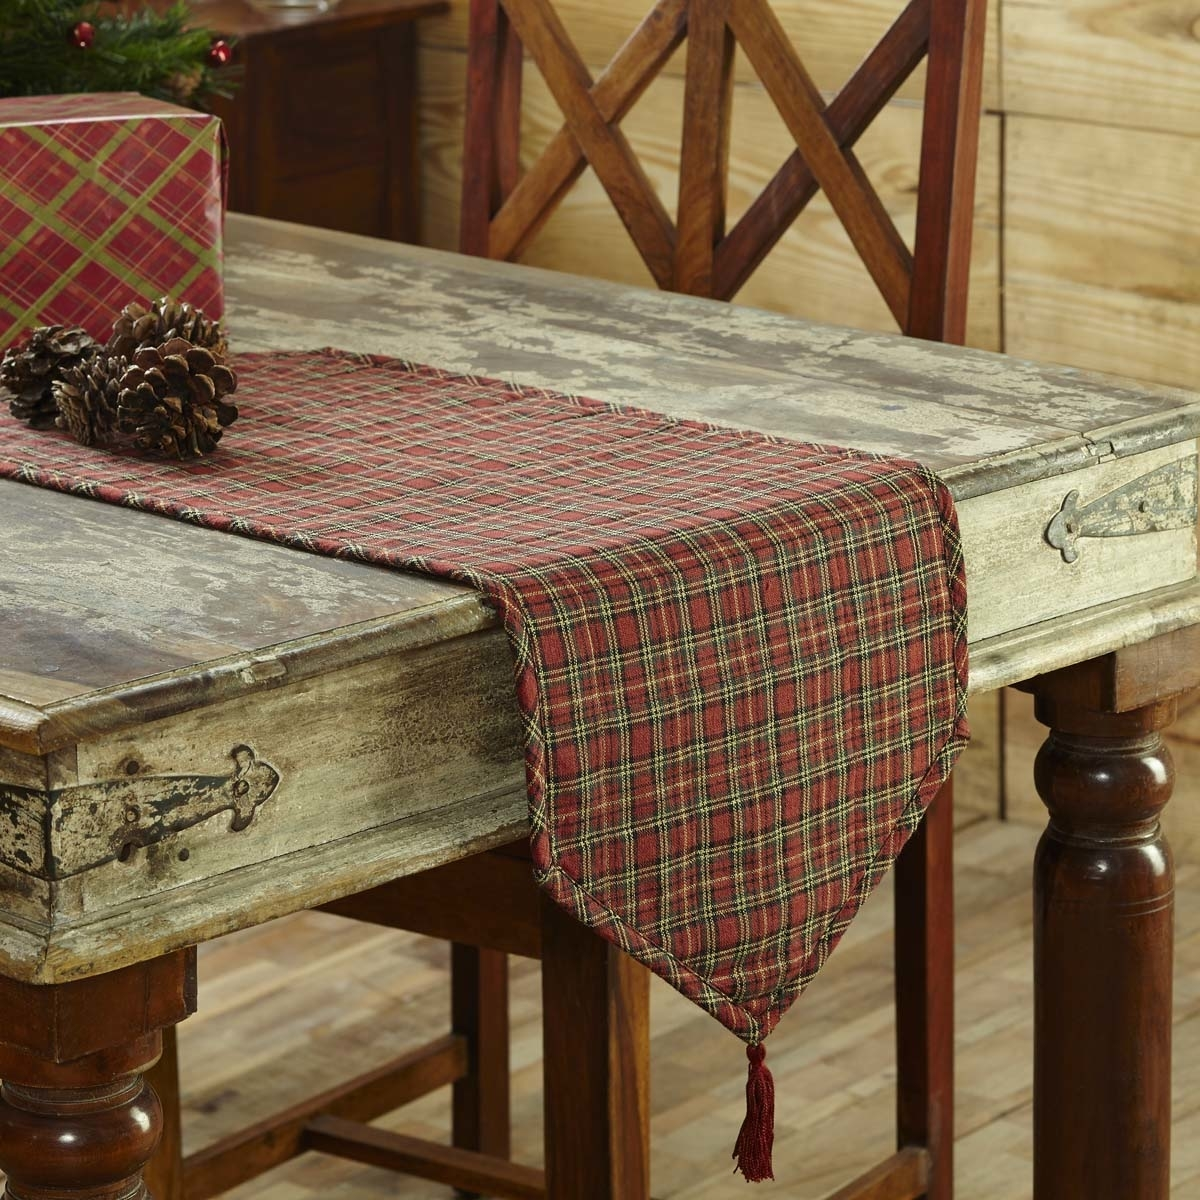 Seasonal Tabletop & Kitchen Tartan Holiday Red Runner 5b17f29c15910230f47cb1f3